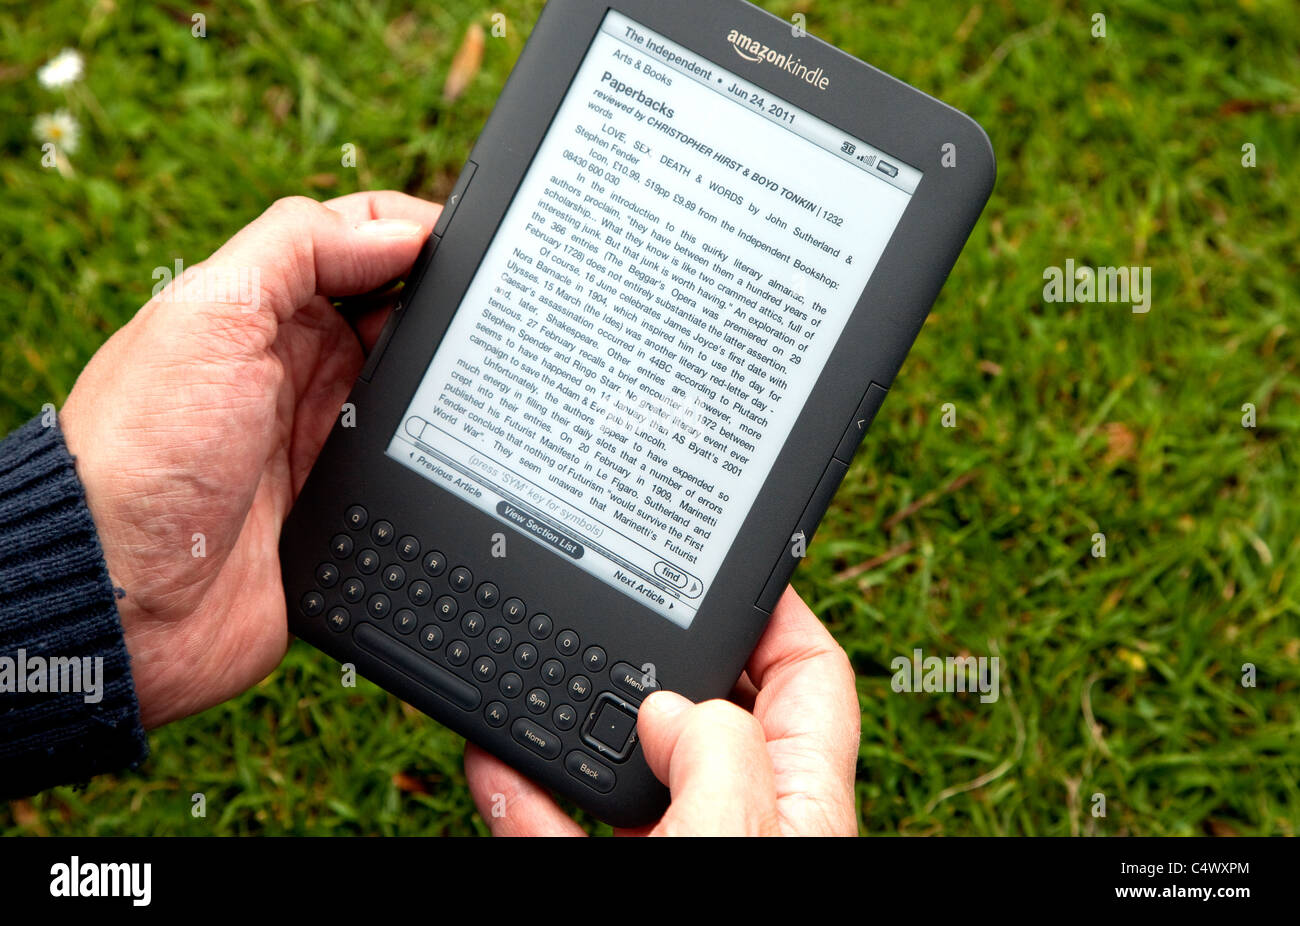 Amazon Kindle 3G e-book reader Stock Photo: 37449180 - Alamy